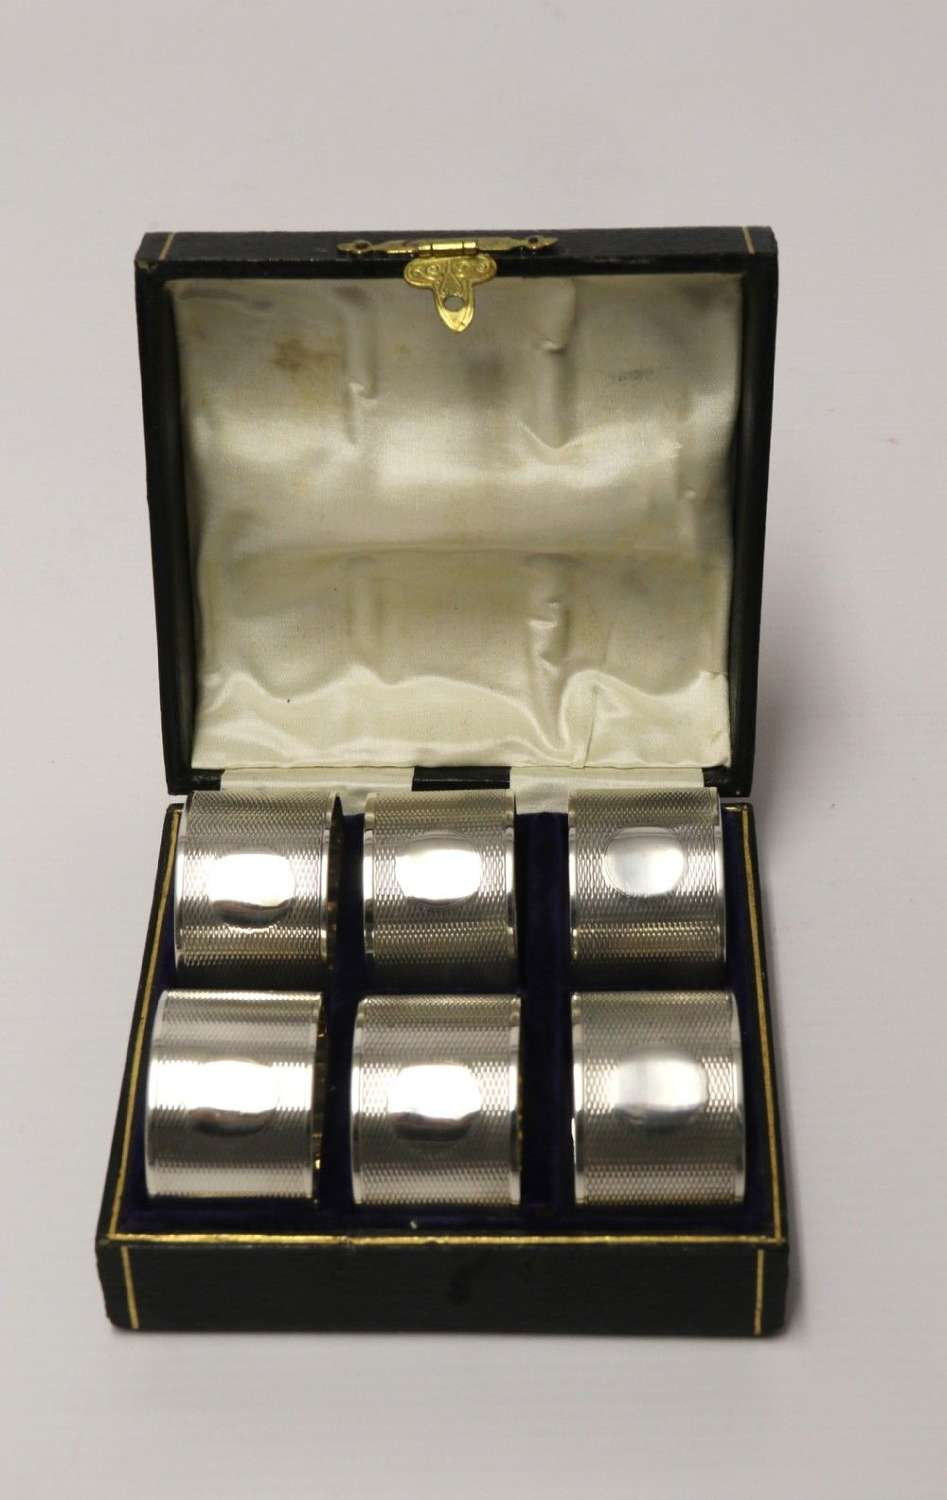 A Boxed Set Of Six Silver Napkin Rings, 1919 - 1920